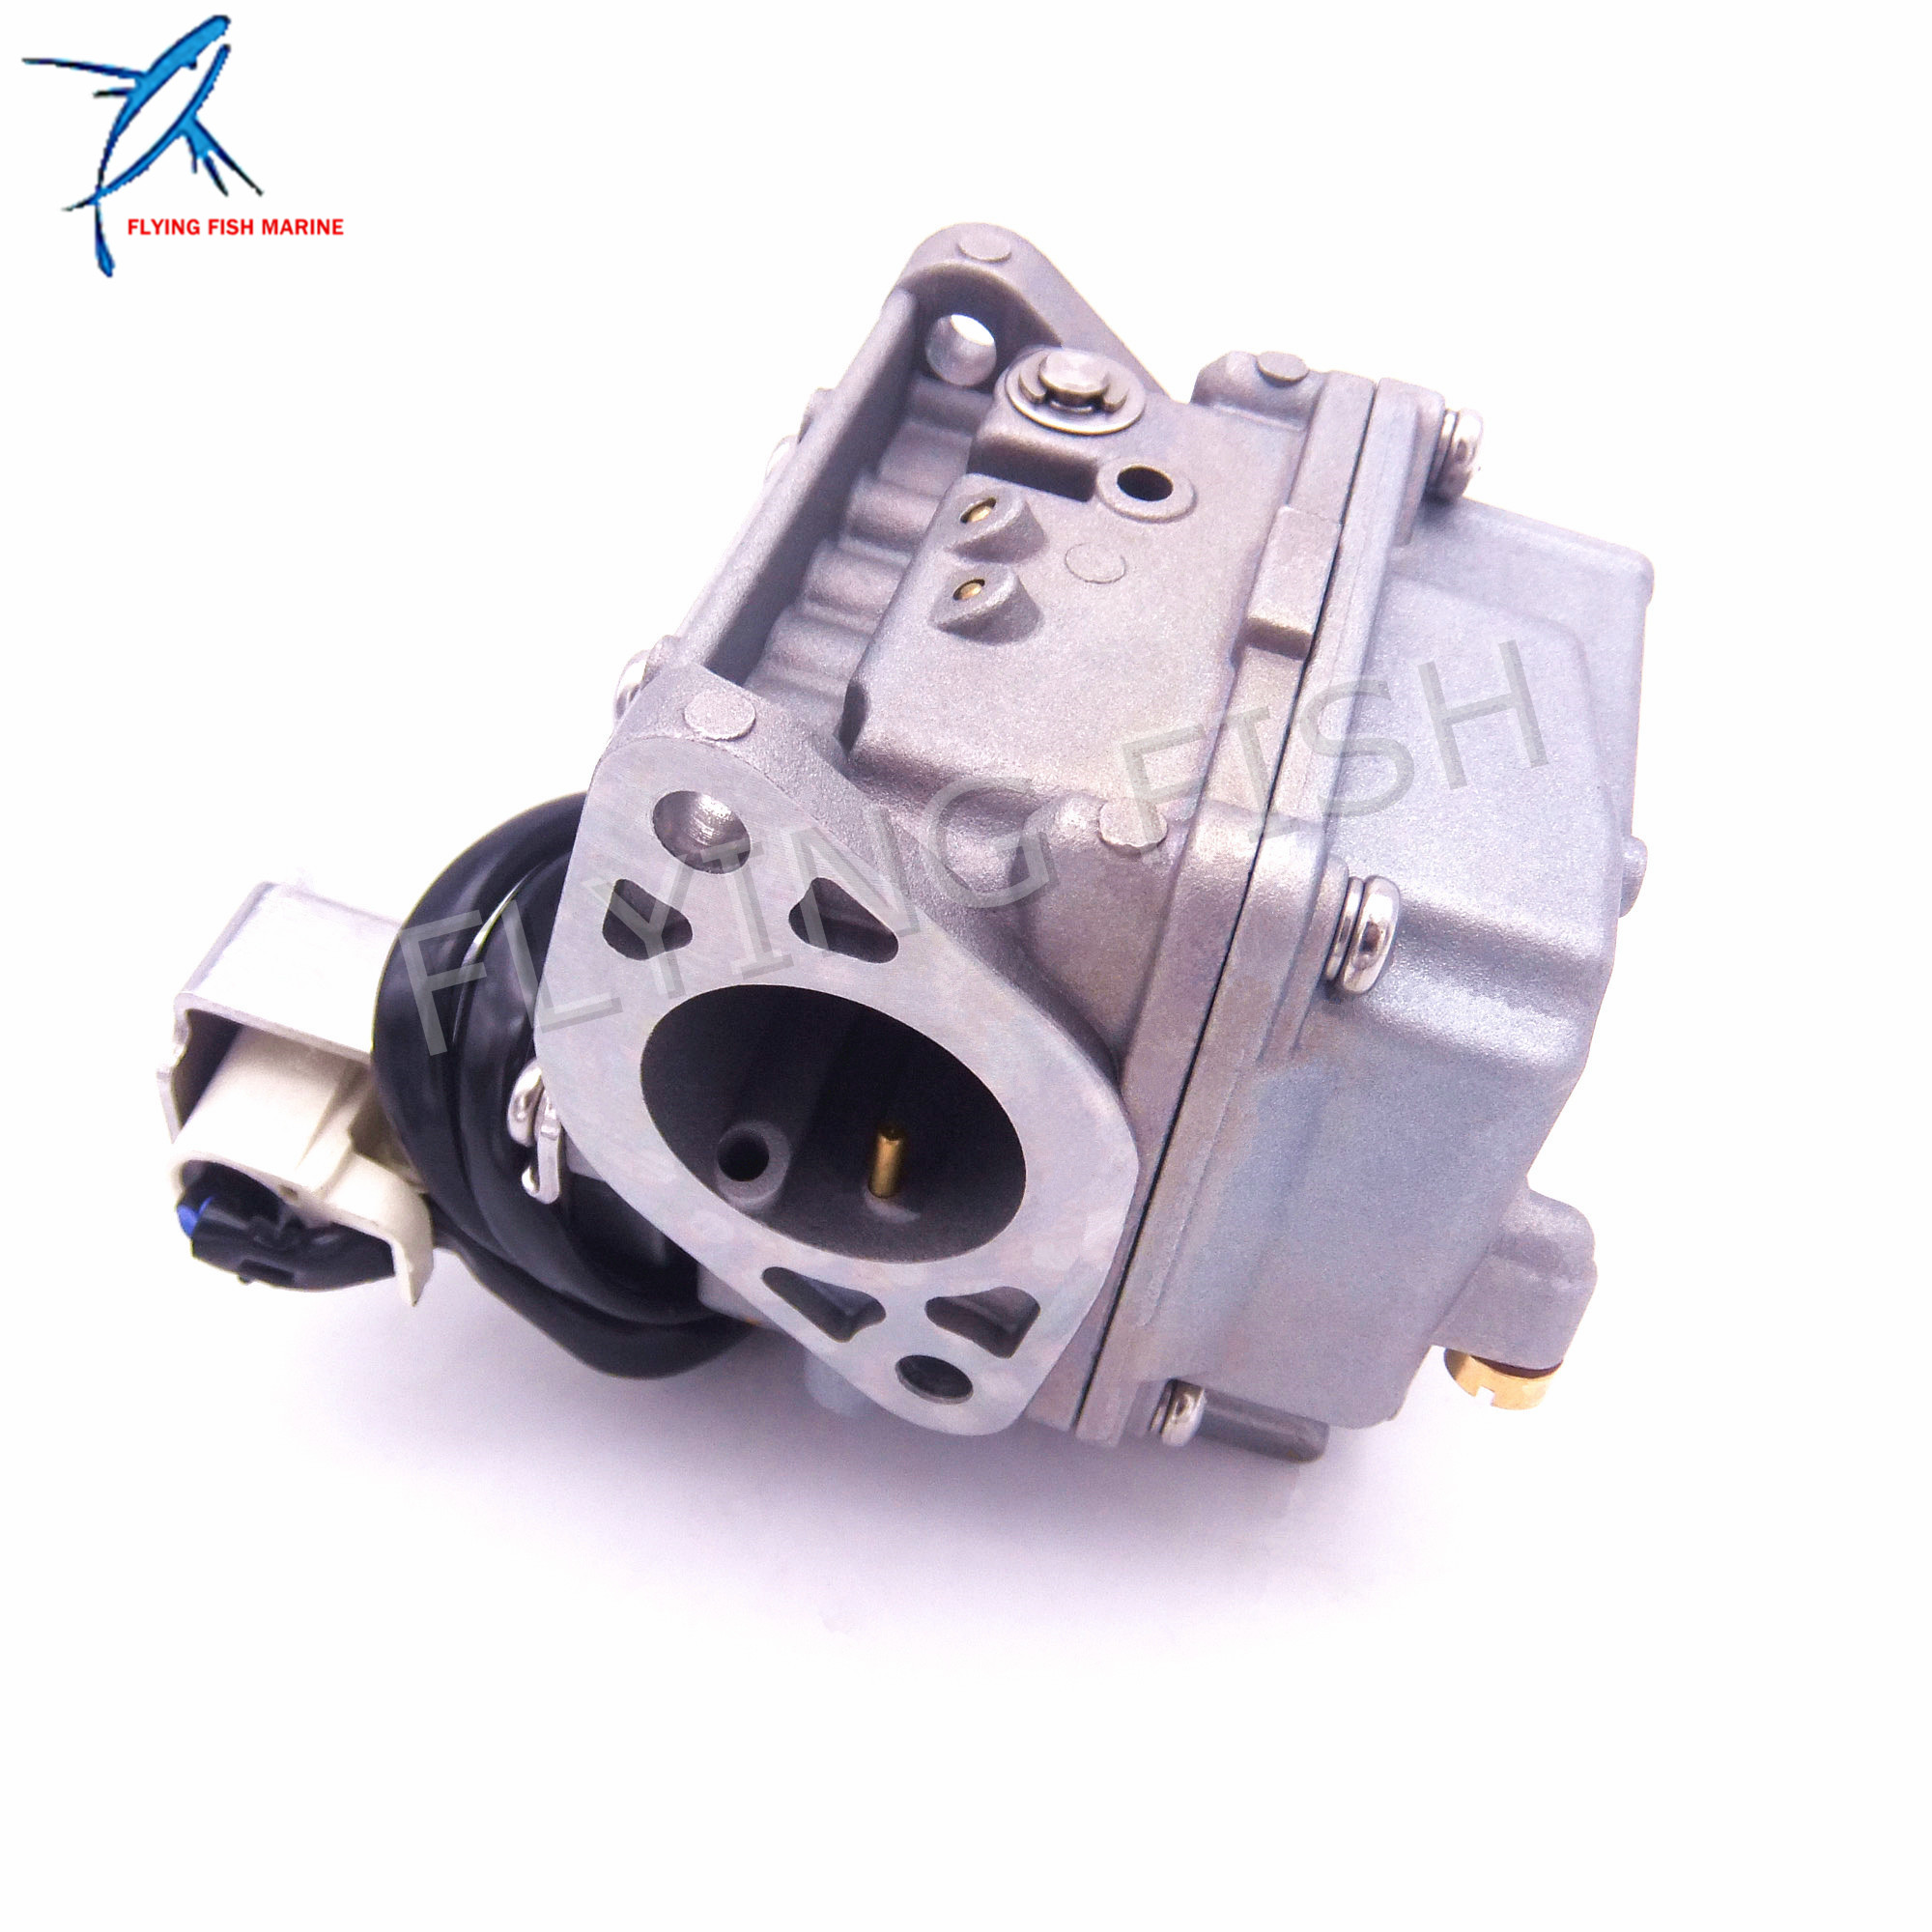 Outboard Engine Carburetor Assy F20-05080000 for Parsun 4-stroke F20A F15A Boat Motor Free Shipping electric outboard engine fishing boat propeller with outboard engine 12v 684w1750 rotationl speed dc motor